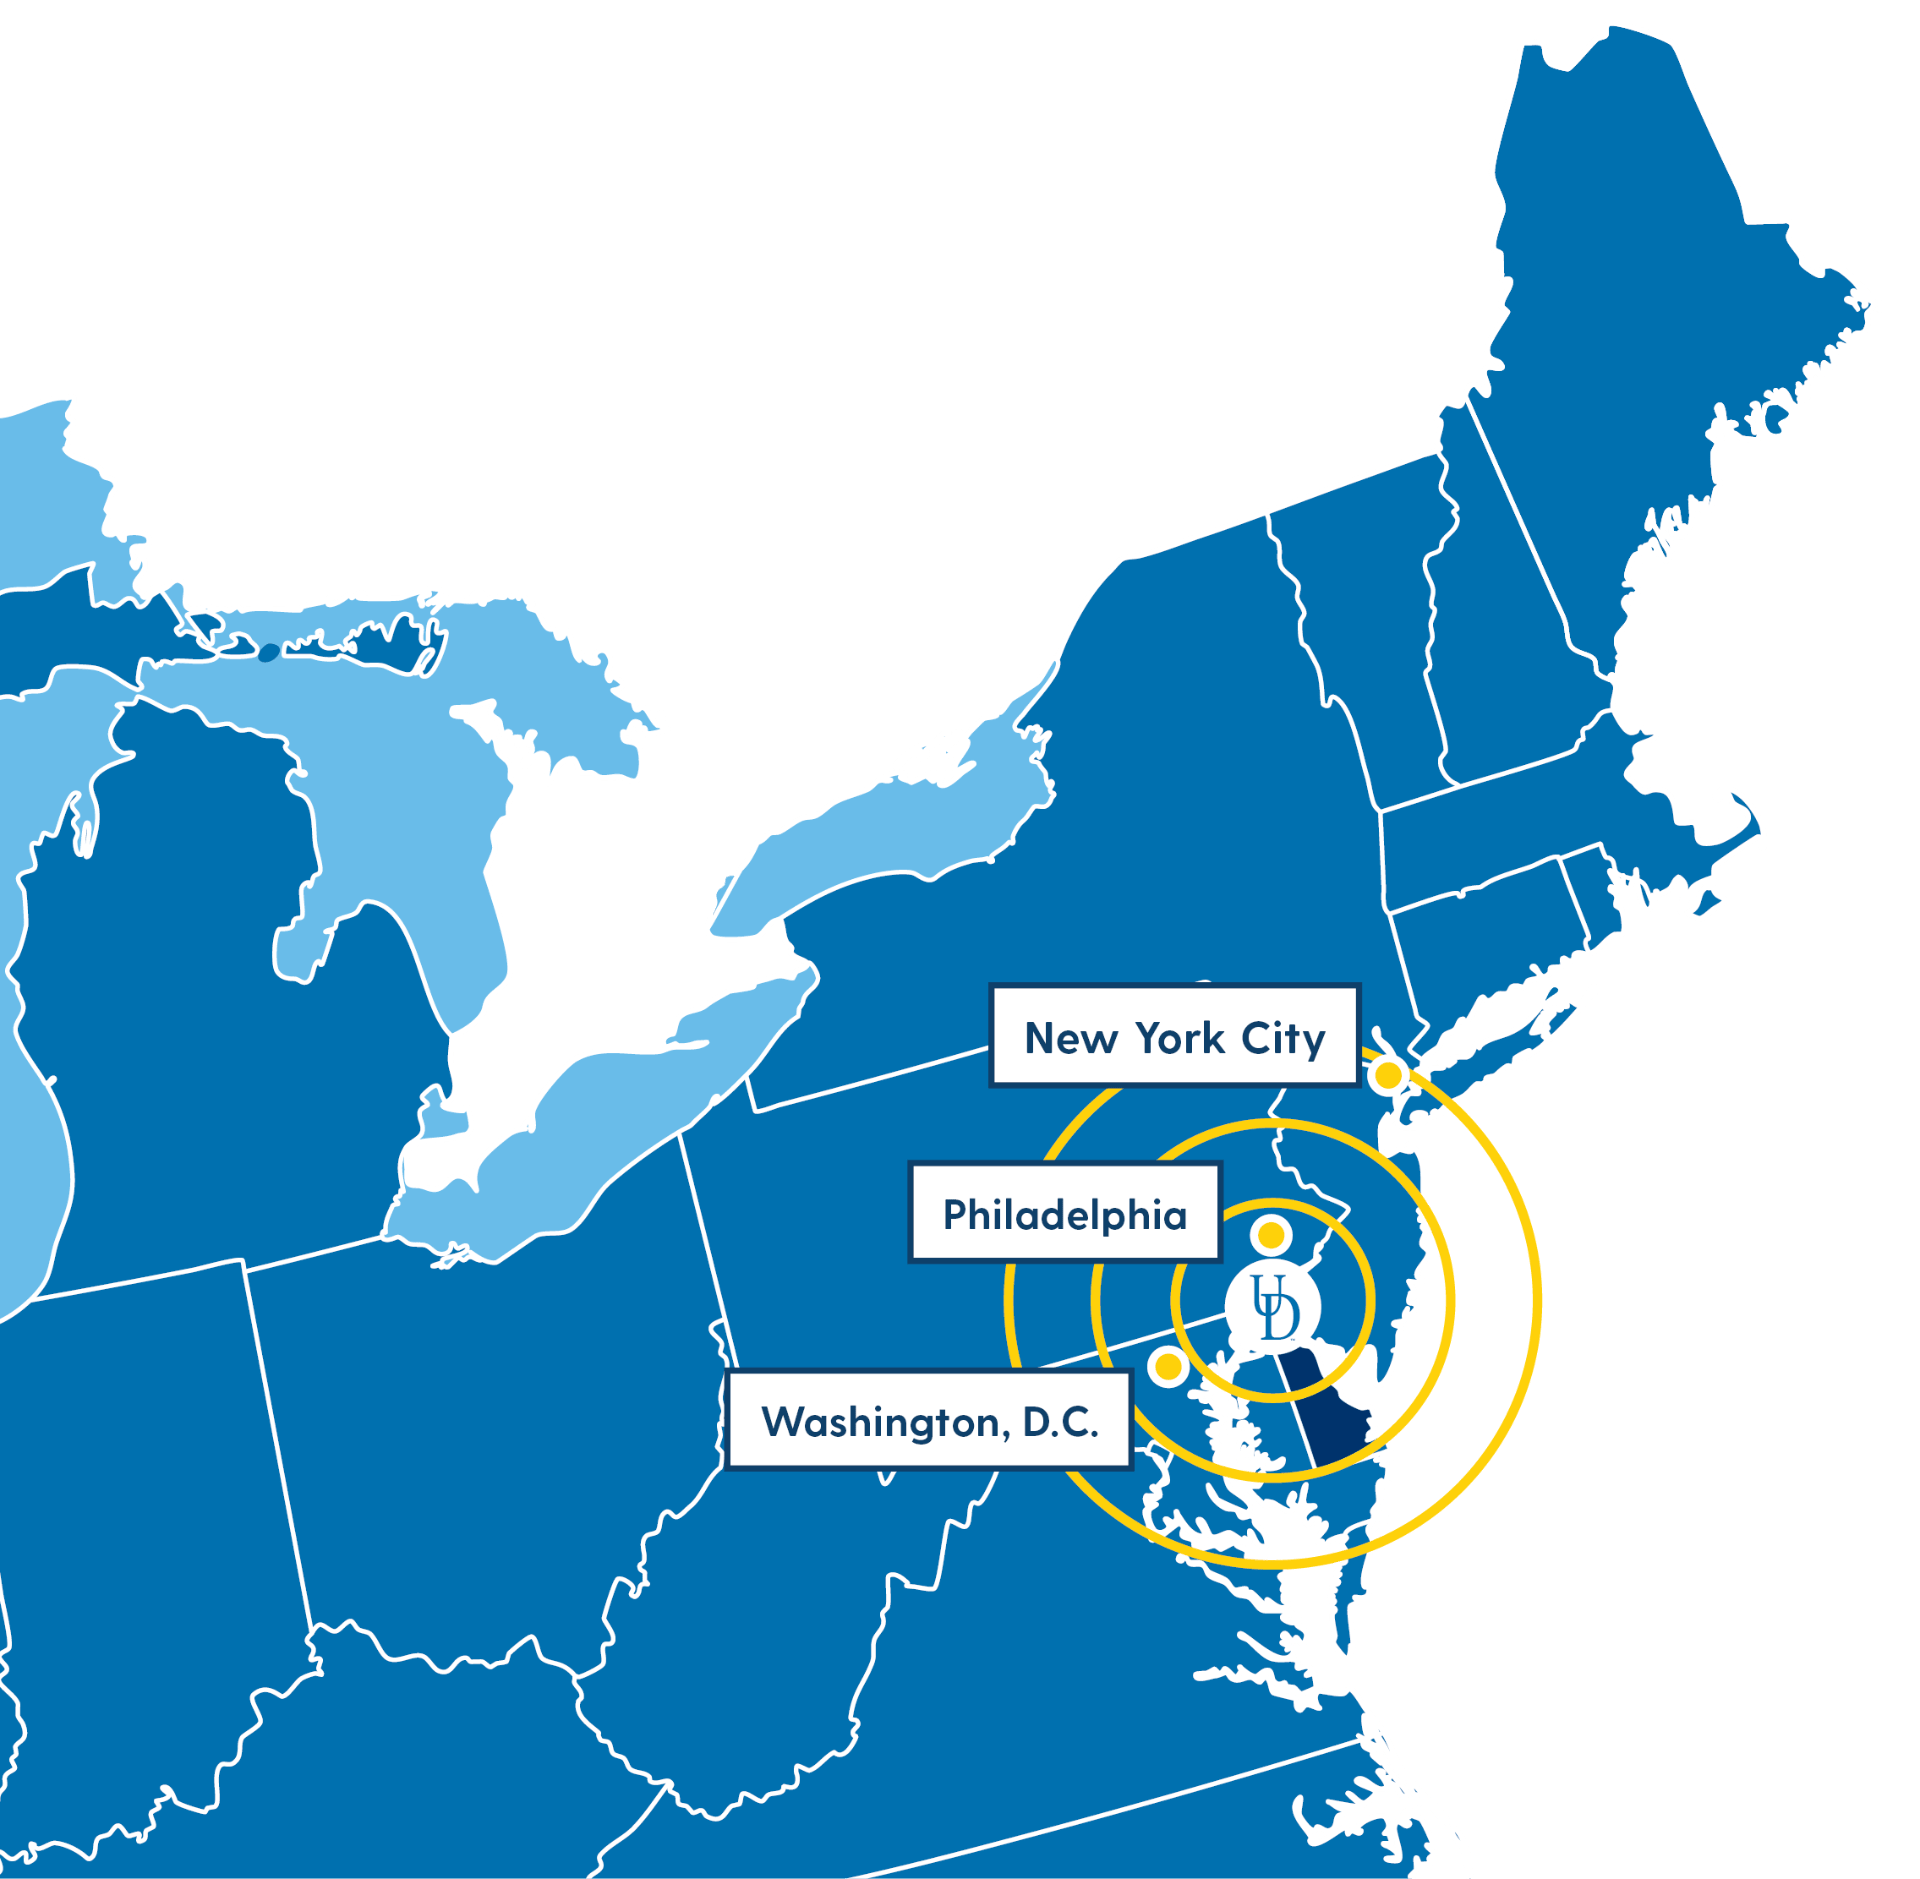 Map showing Newark centrally located on the East Coast of the U.S.